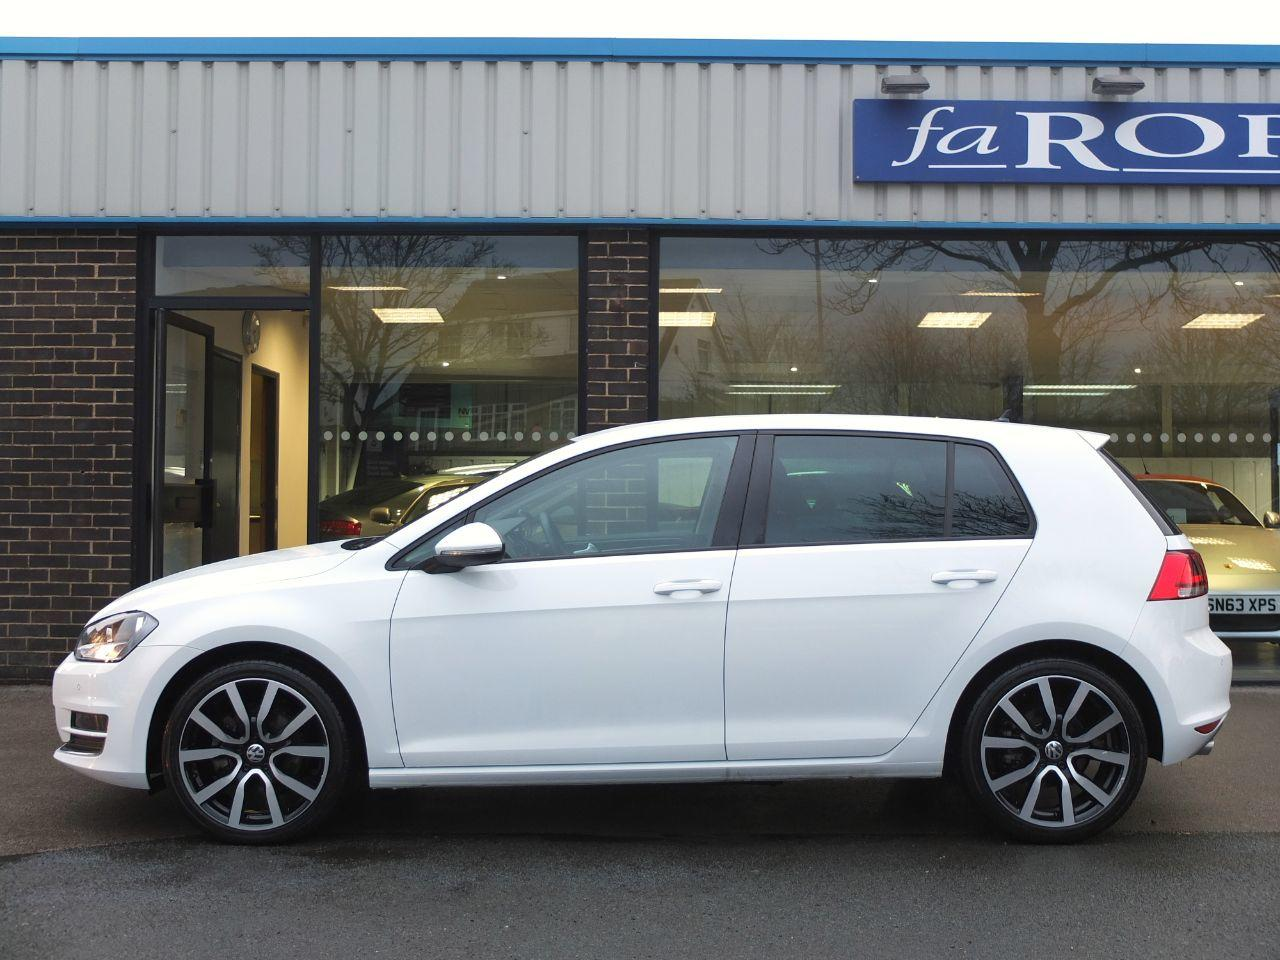 Volkswagen Golf 2.0 TDI GT 5 door 150ps DSG Hatchback Diesel Pure White